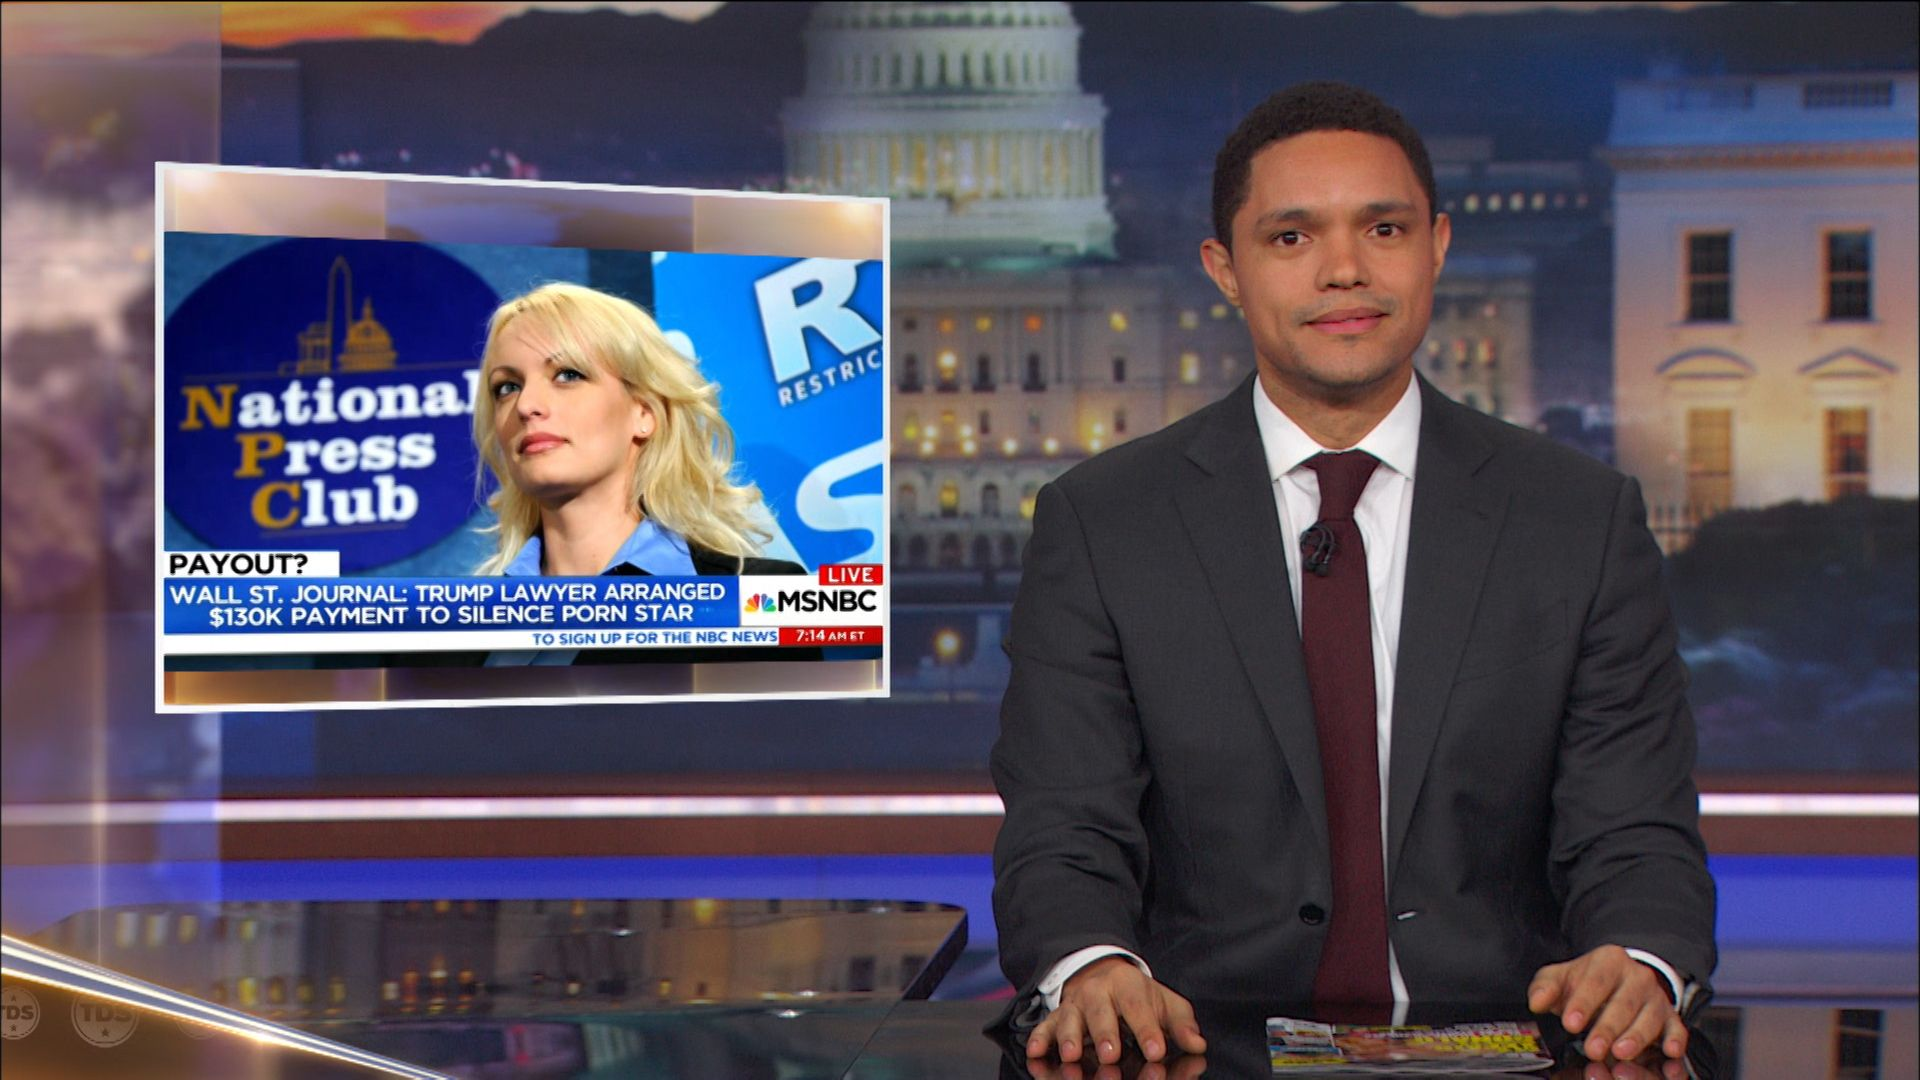 The Weird Non-Sexual Parts of Trump's Affair with Porn Star Stormy Daniels  - The Daily Show with Trevor Noah (Video Clip) | Comedy Central